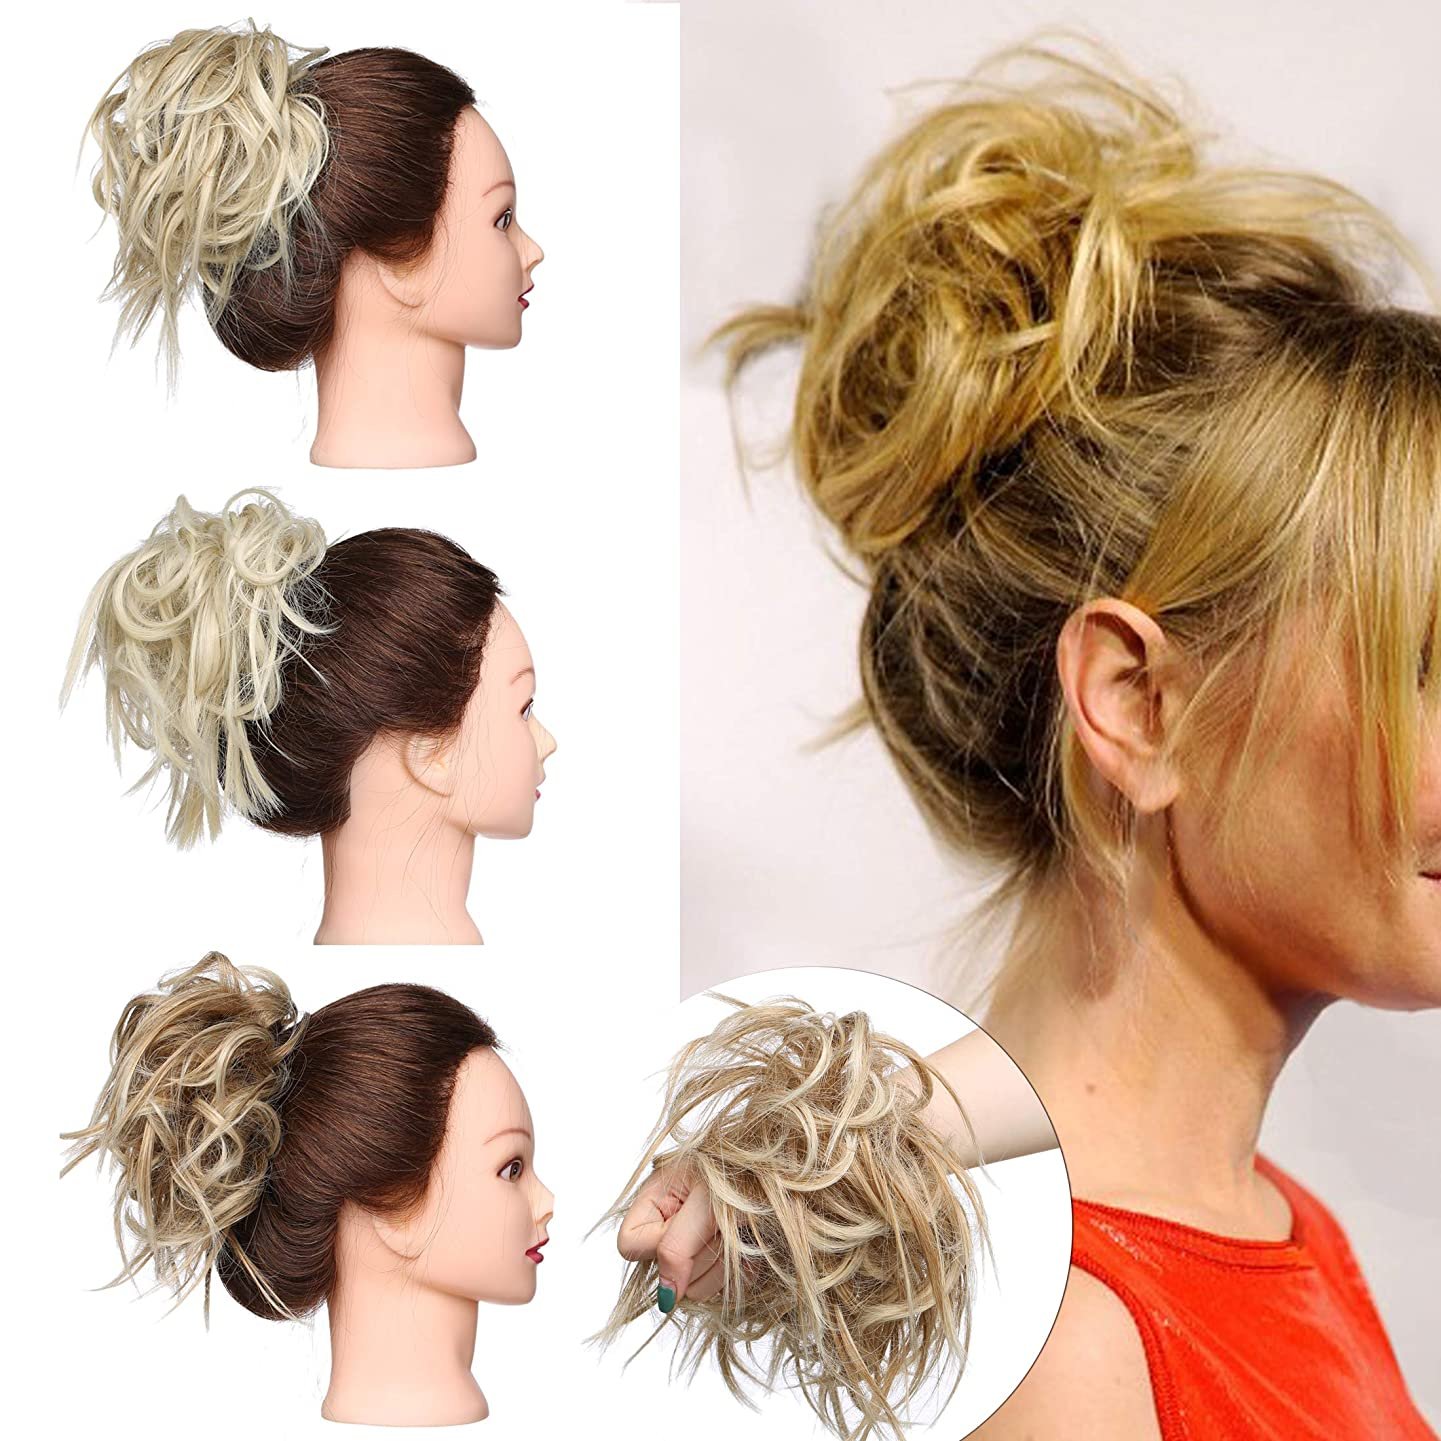 Tousled Updo Messy Bun Hair Piece Scrunchies Synthetic Wavy Bun Extensions Rubber Band Elastic Scrunchie Chignon Instant Ponytail Hairpiece for Women #27T613 Sandy Brown & Bleach Blonde